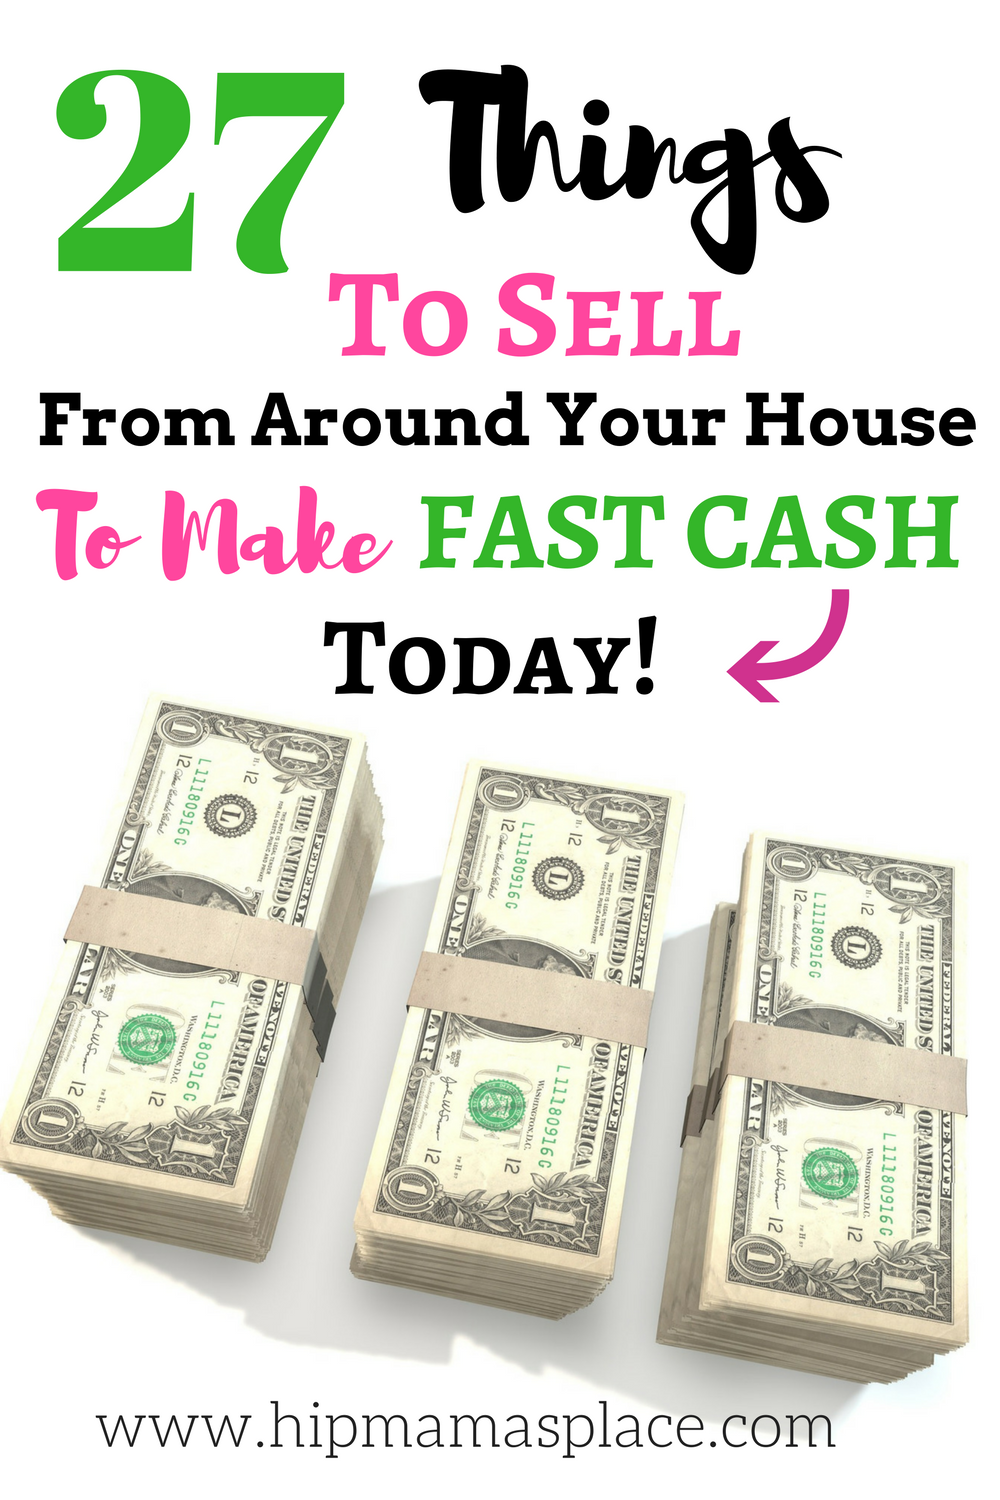 27 Things From Around Your House To Sell For Fast Cash,Farmhouse Kitchen Design Images